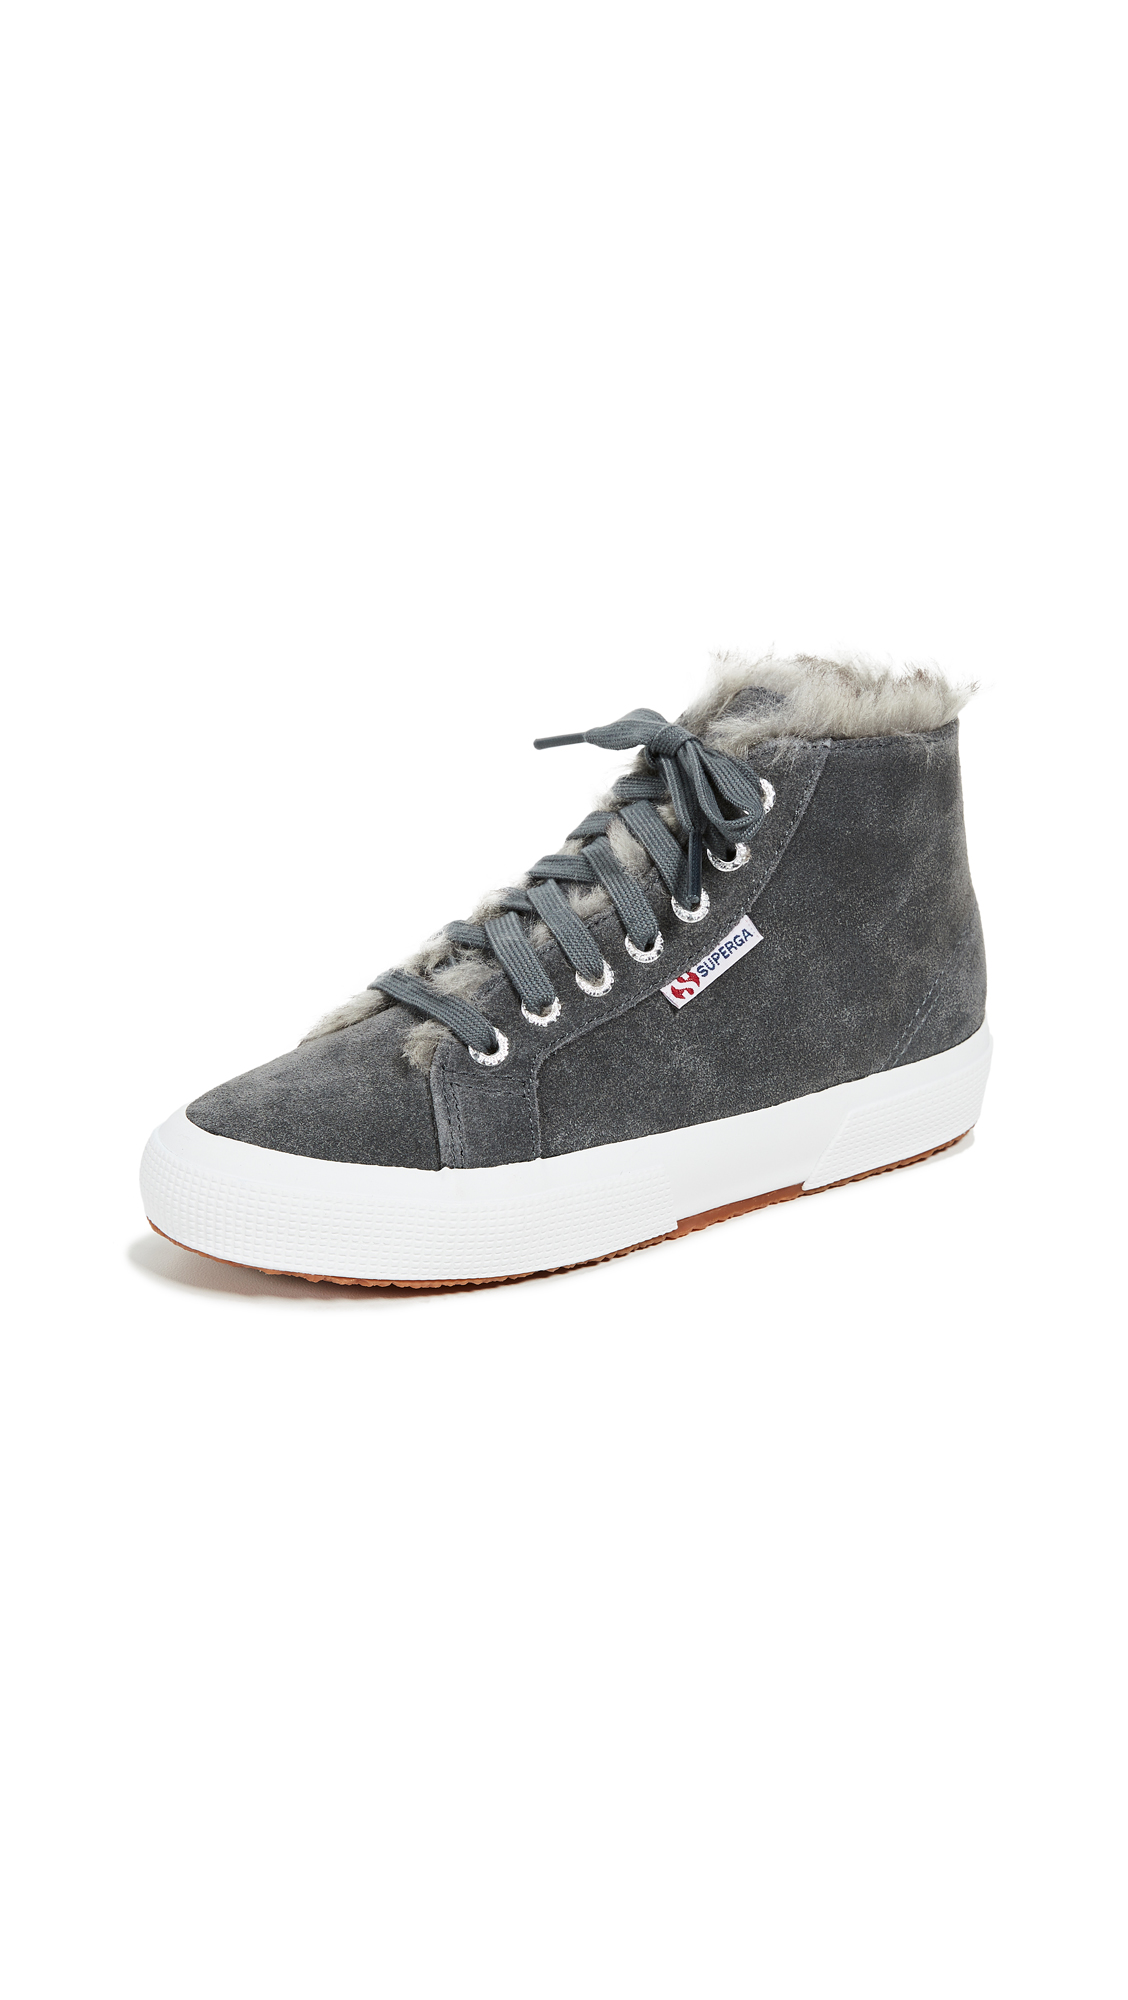 Superga 2795 Faux Fur Lined Sneakers - Dark Grey